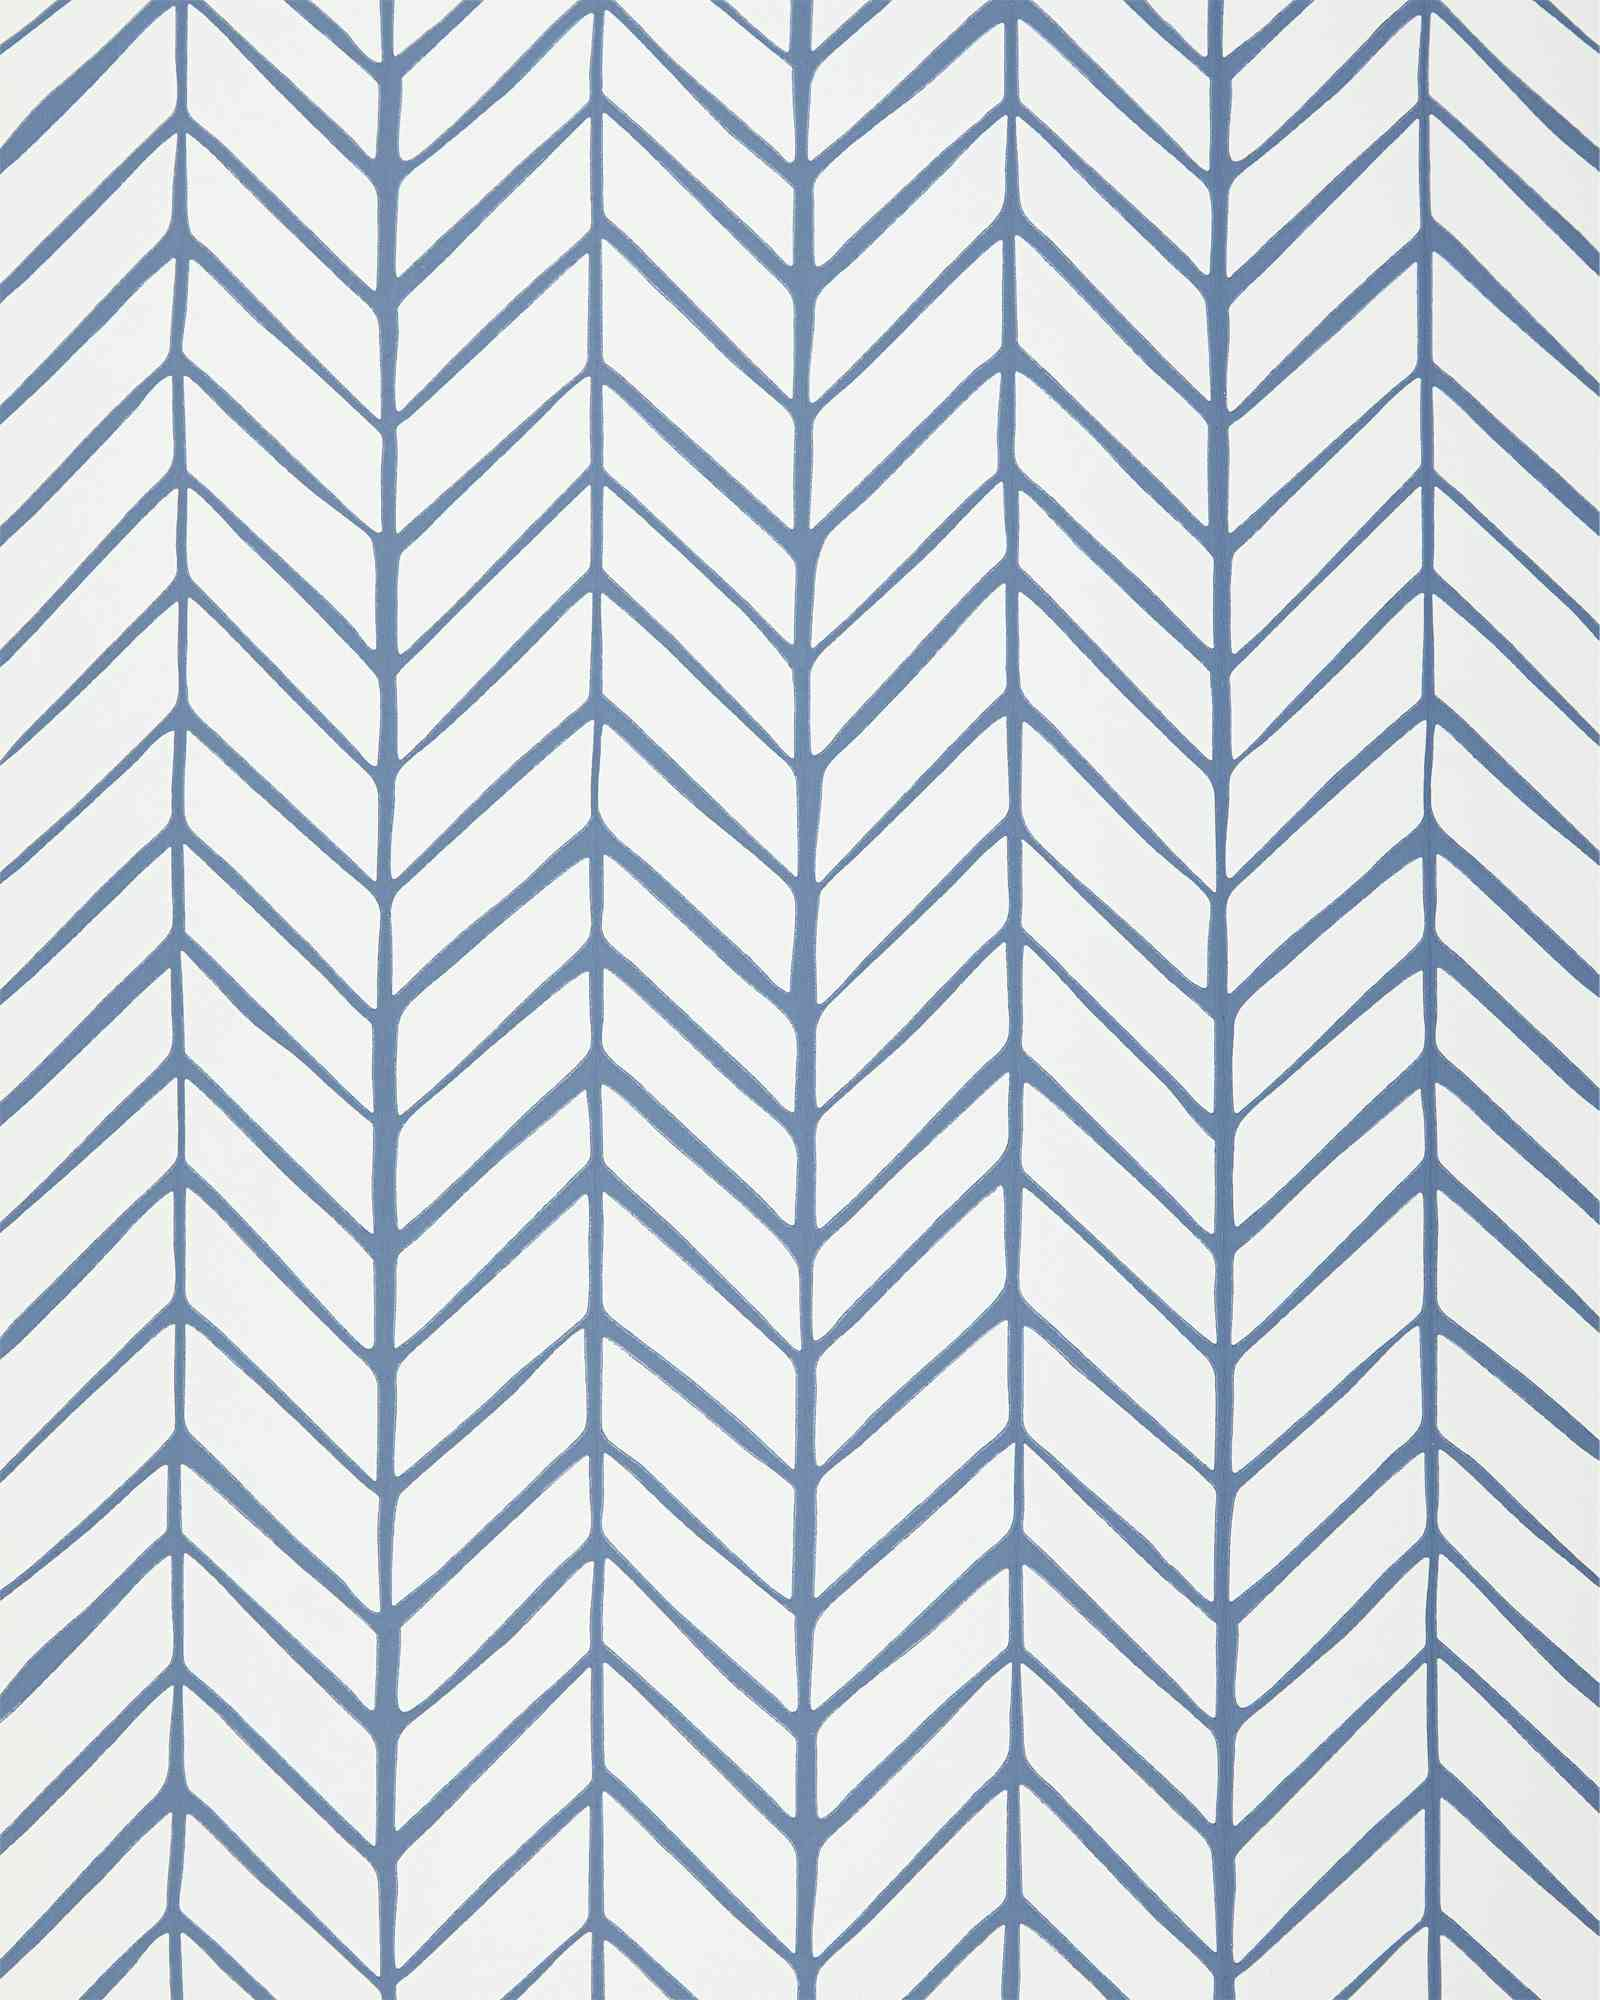 Feather Wallpaper in Blue